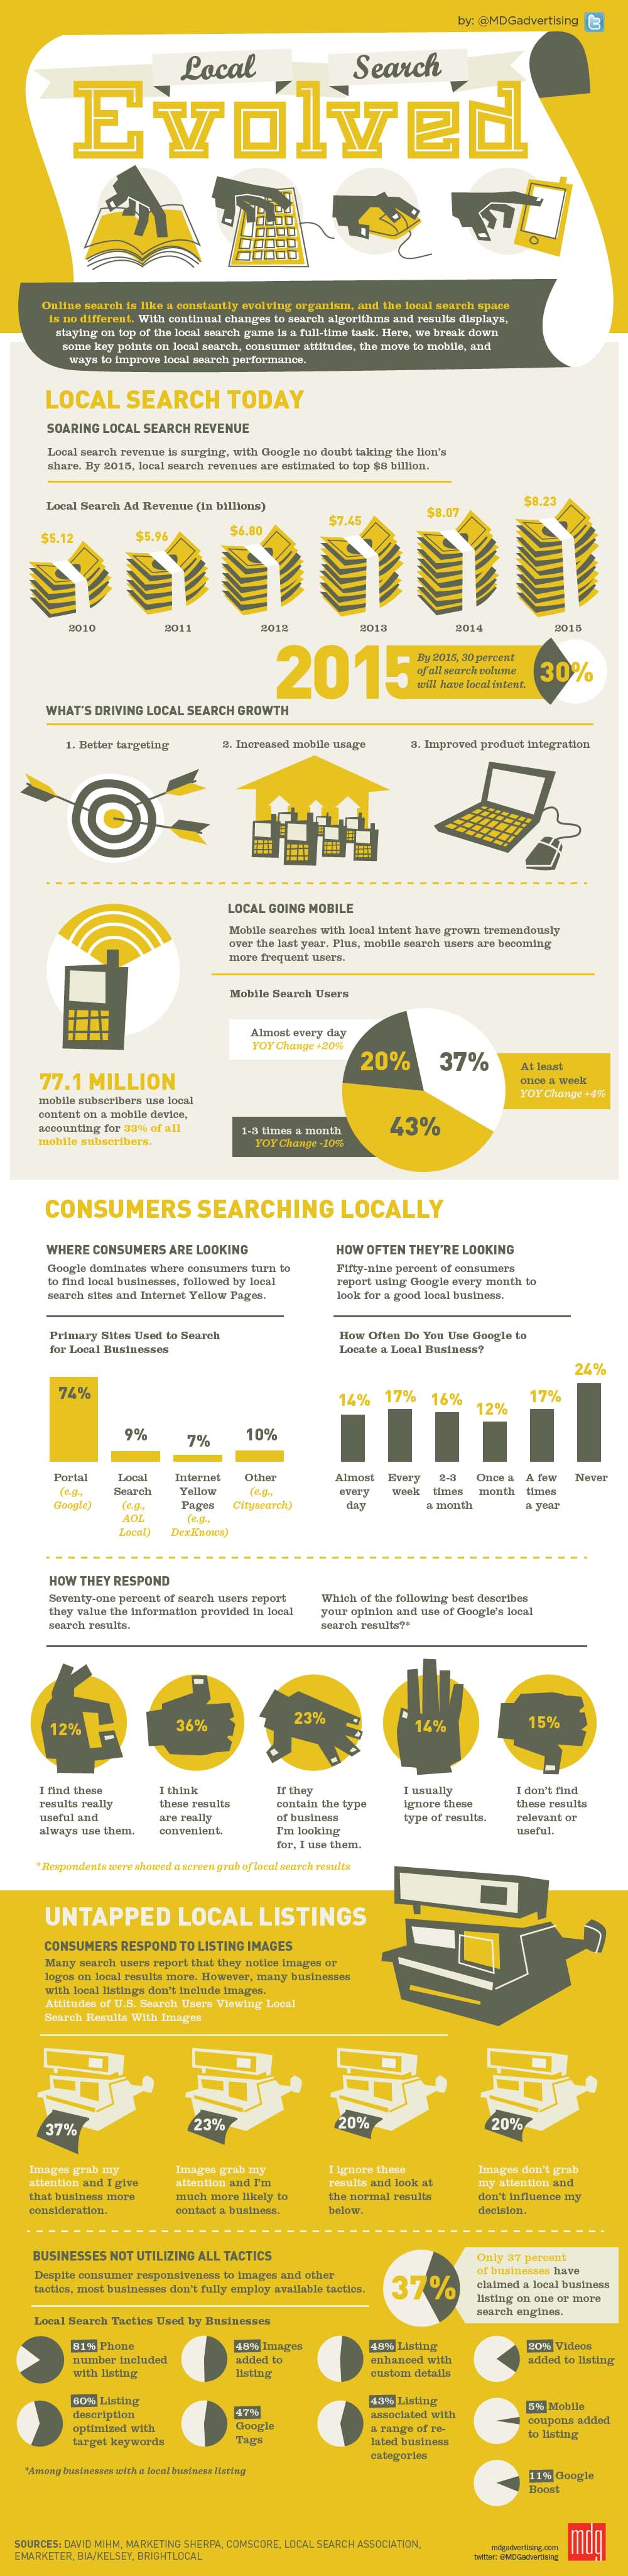 How To Leverage Local Search Marketing For Small Businesses image MDG big